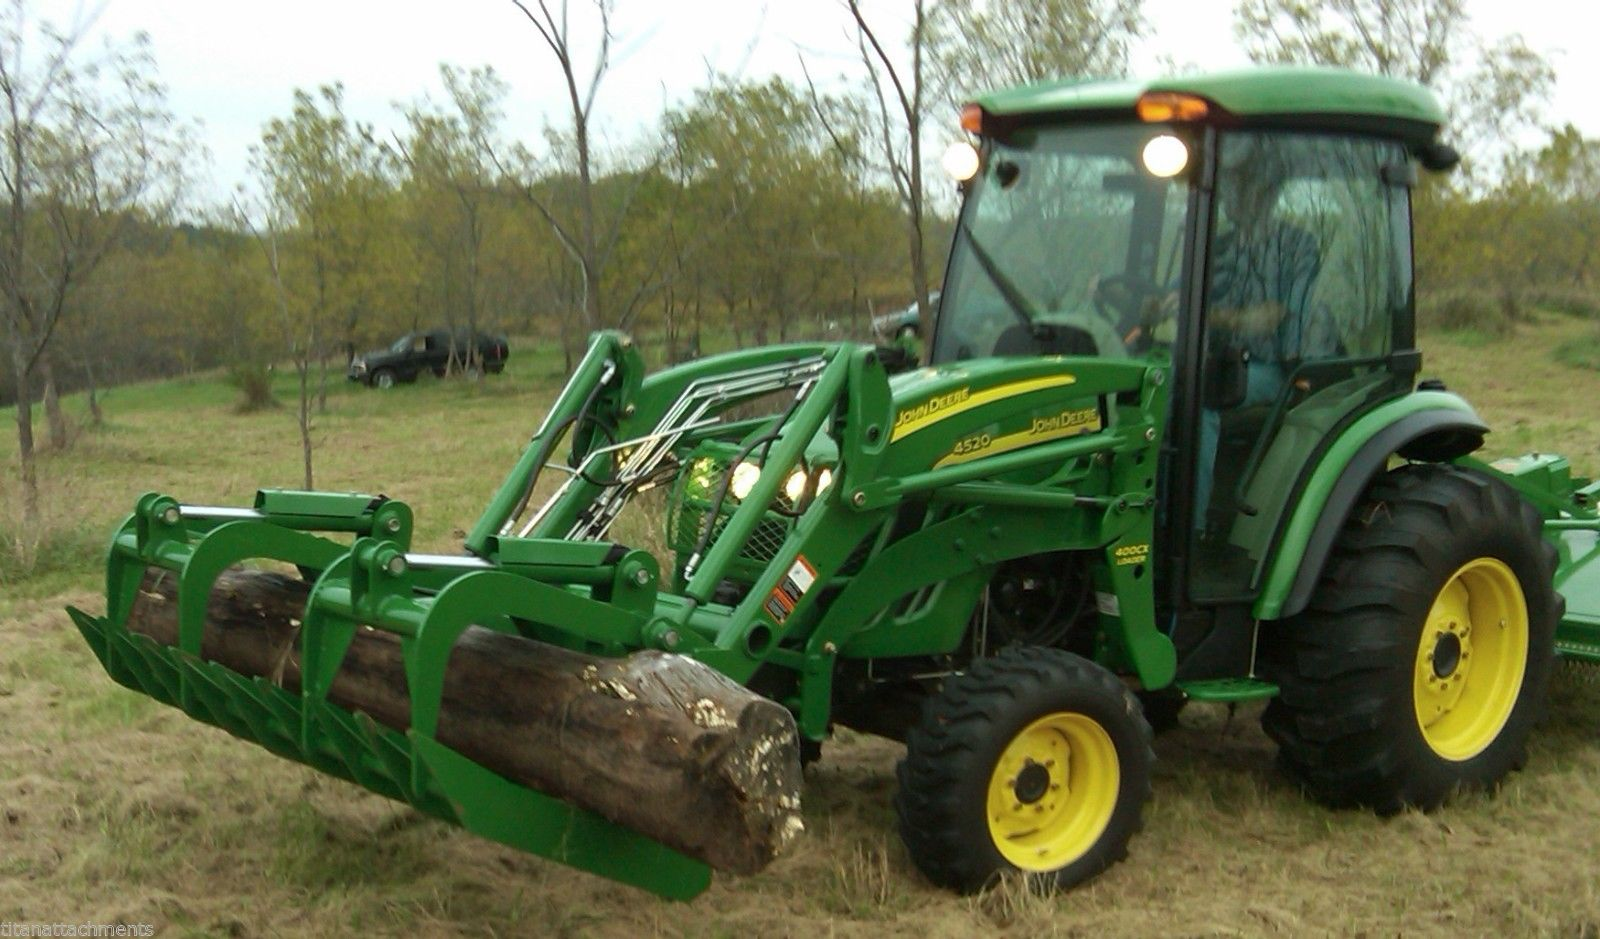 Jd Tractor Forks : Root grapple bucket attachment for john deere